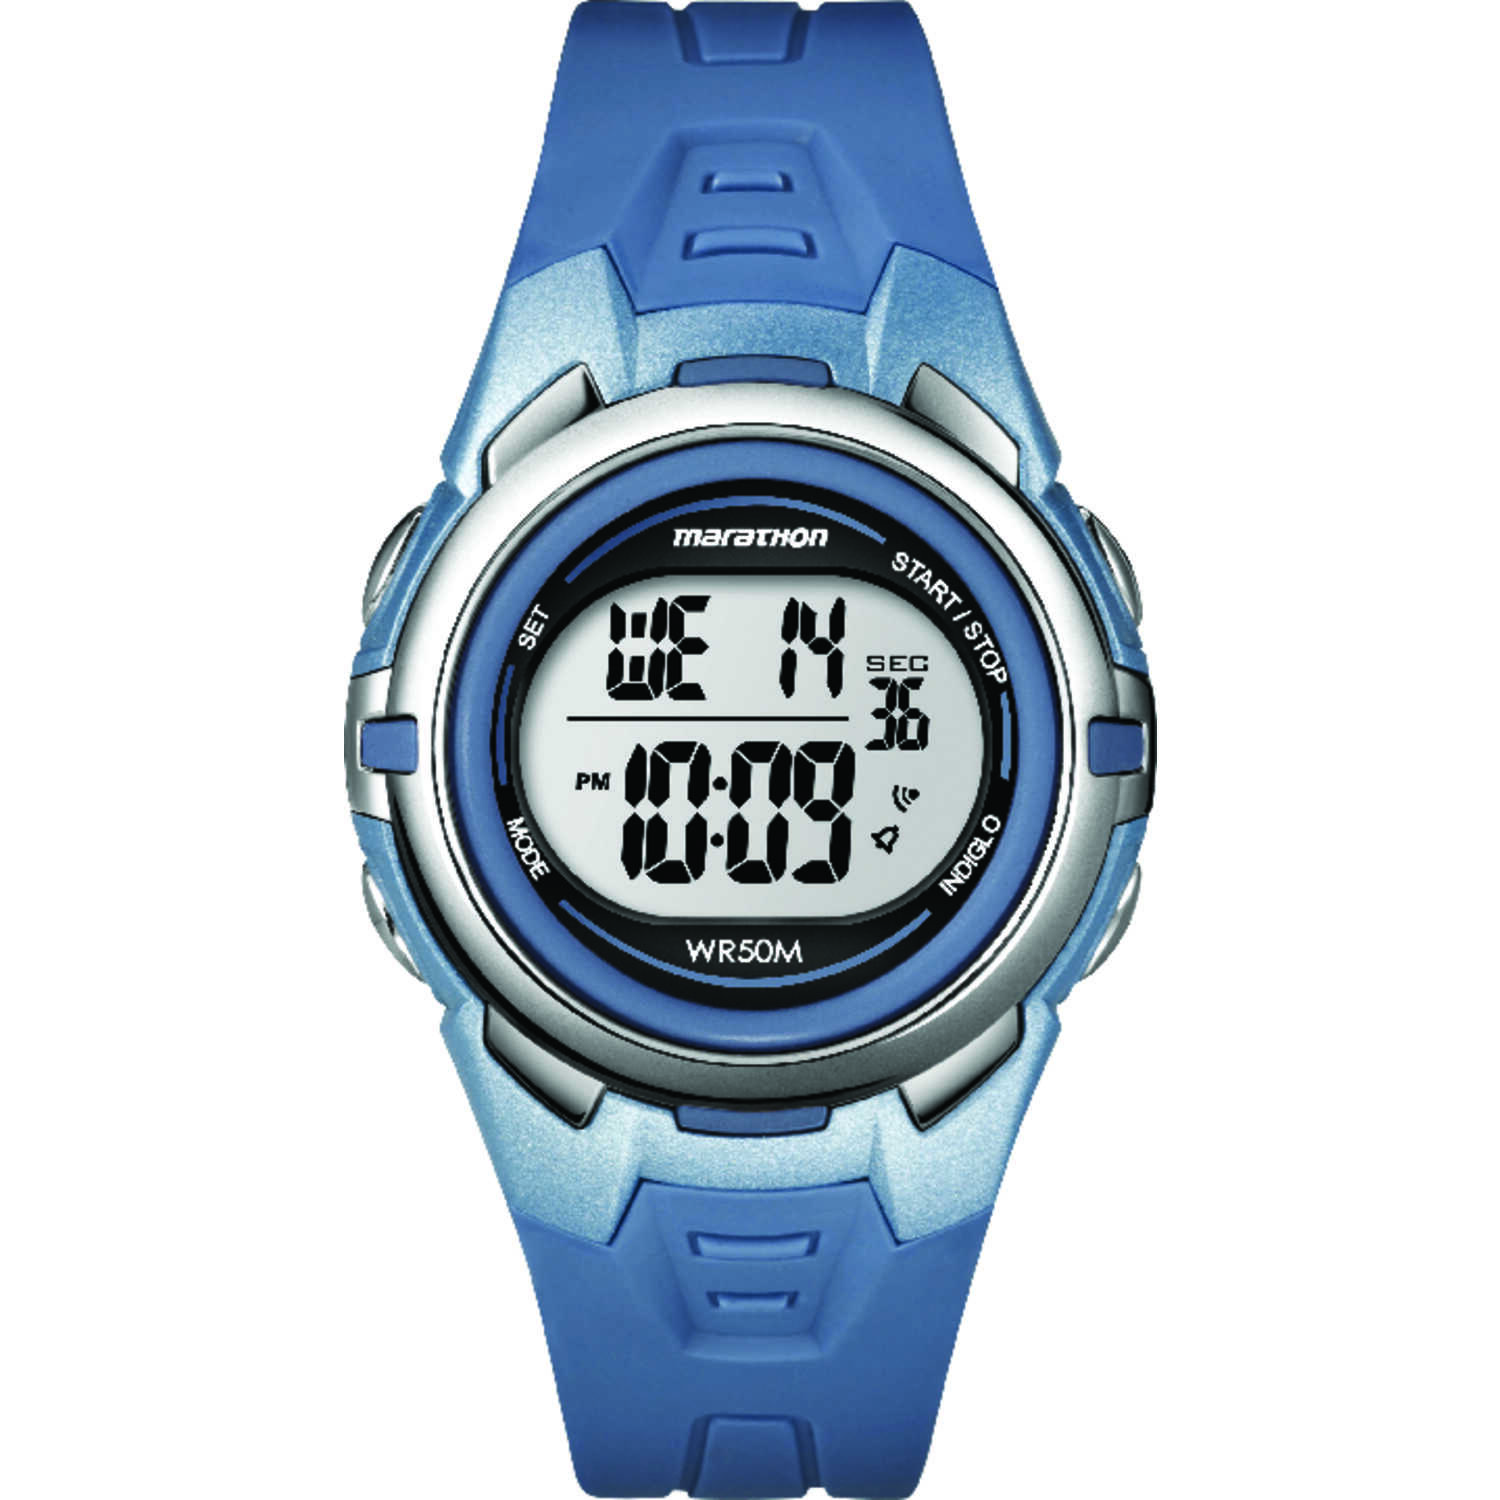 Timex  Marathon  Unisex  Round  Blue  Watch  Digital  Resin  Water Resistant